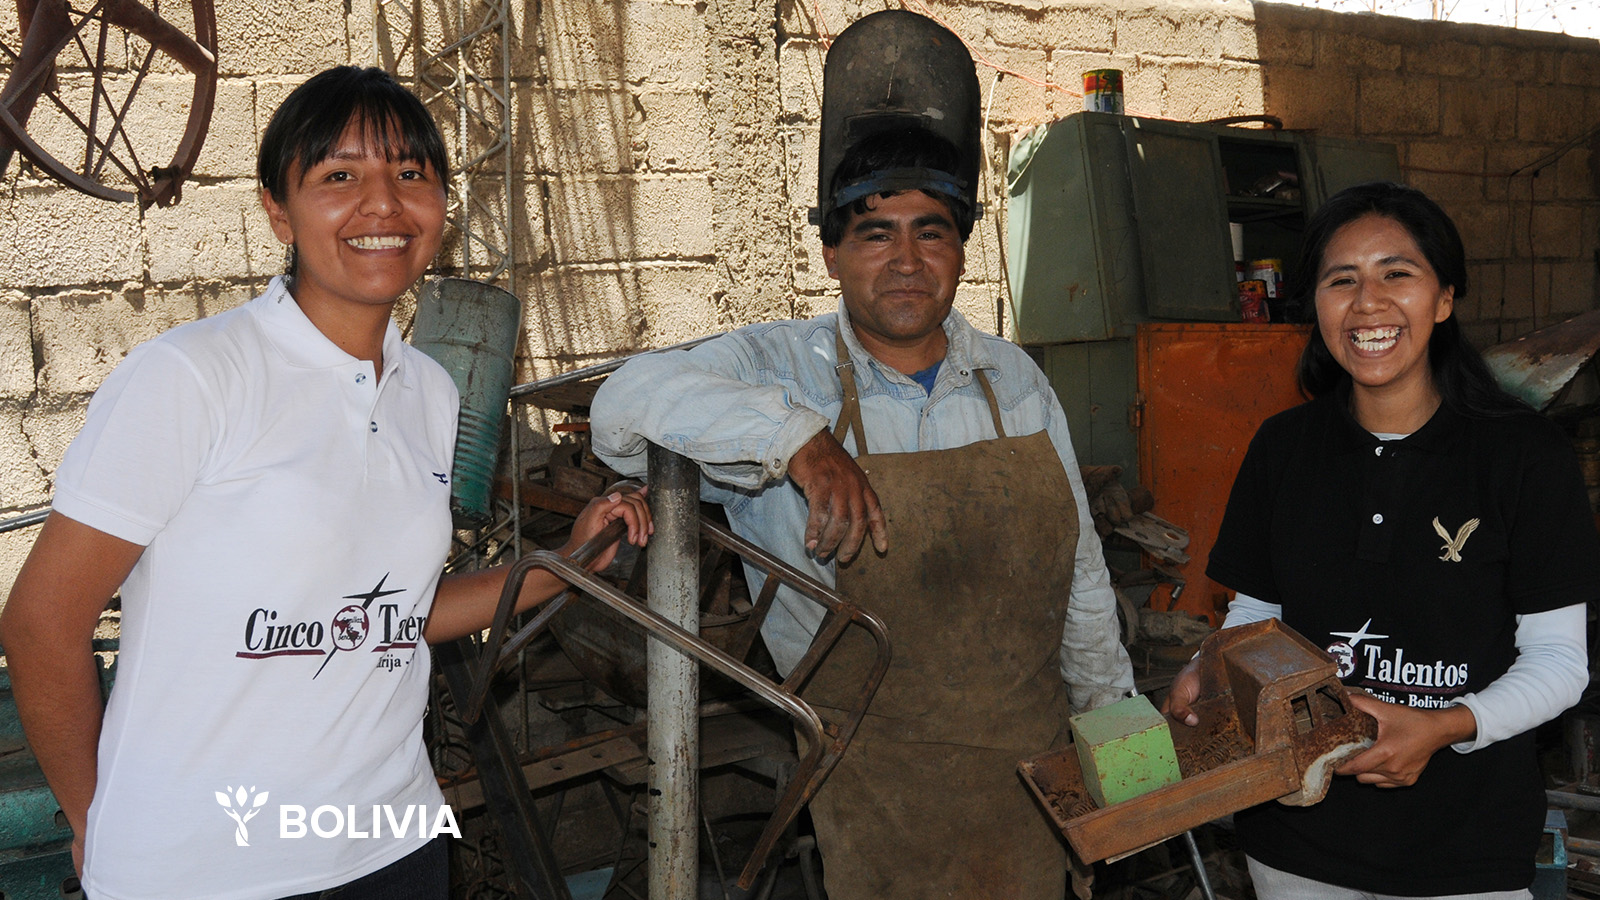 Alejandro is a metal worker in Bolivia. Pictured here with Five Talents leaders Sarah and Eva.